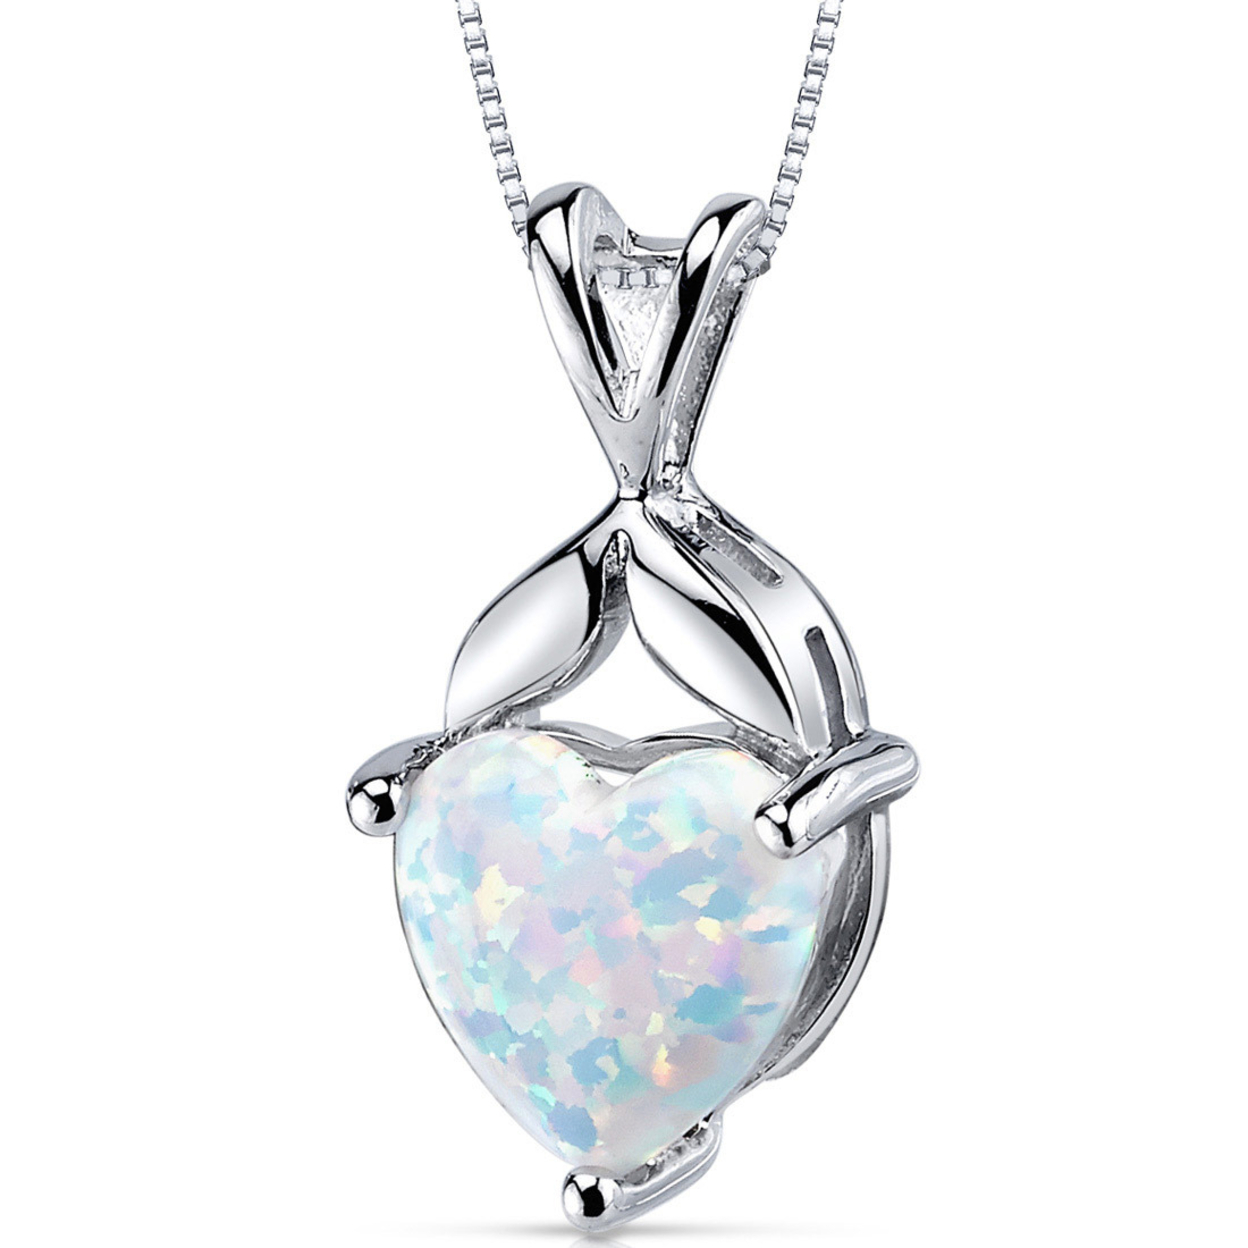 Oravo 2.50 Carat T.g.w. Heart Shape Created Opal Rhodium Over Sterling Silver Pendant, 18""